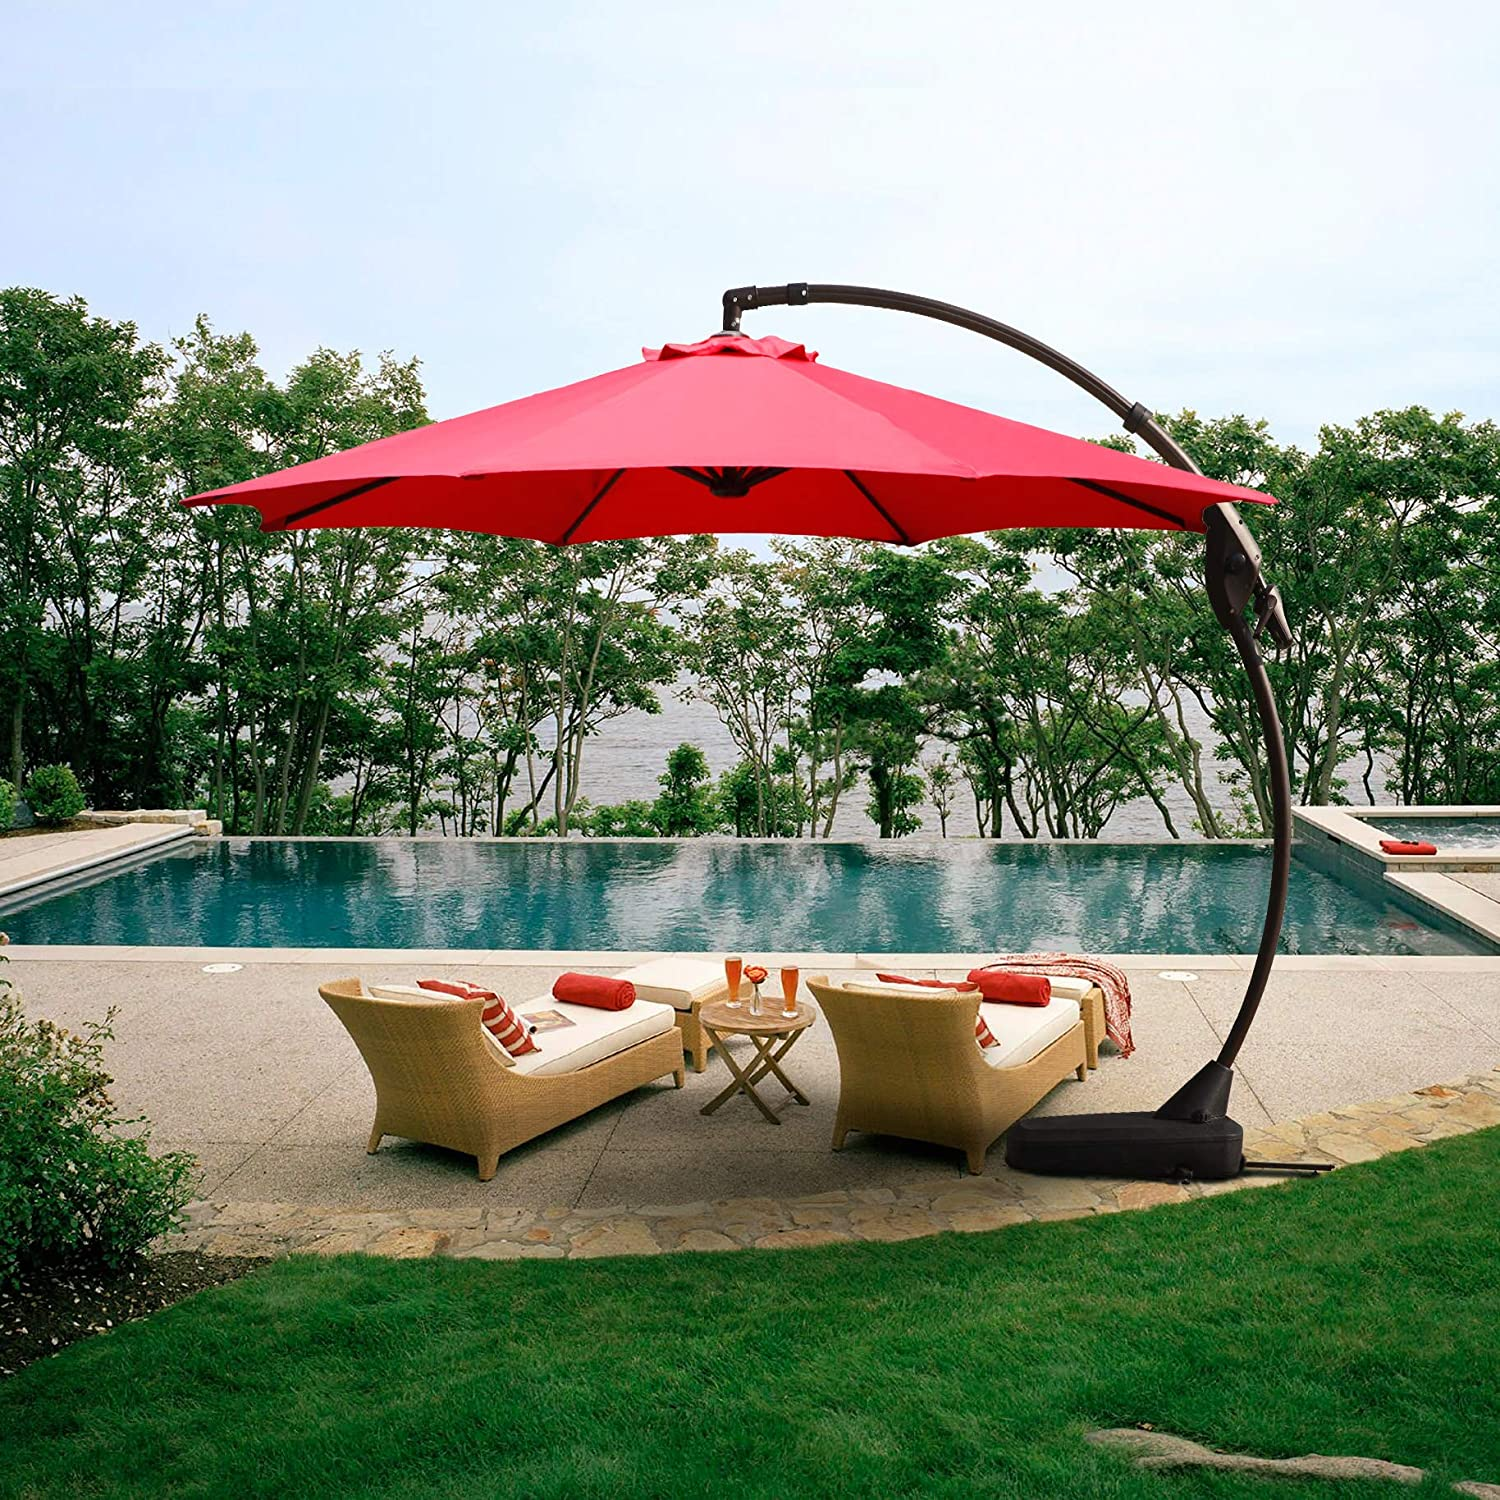 Grand patio Offset Patio Umbrella 12 FT Curvy Outdoor Aluminum Cantilever Umbrella with Base,Brick Red